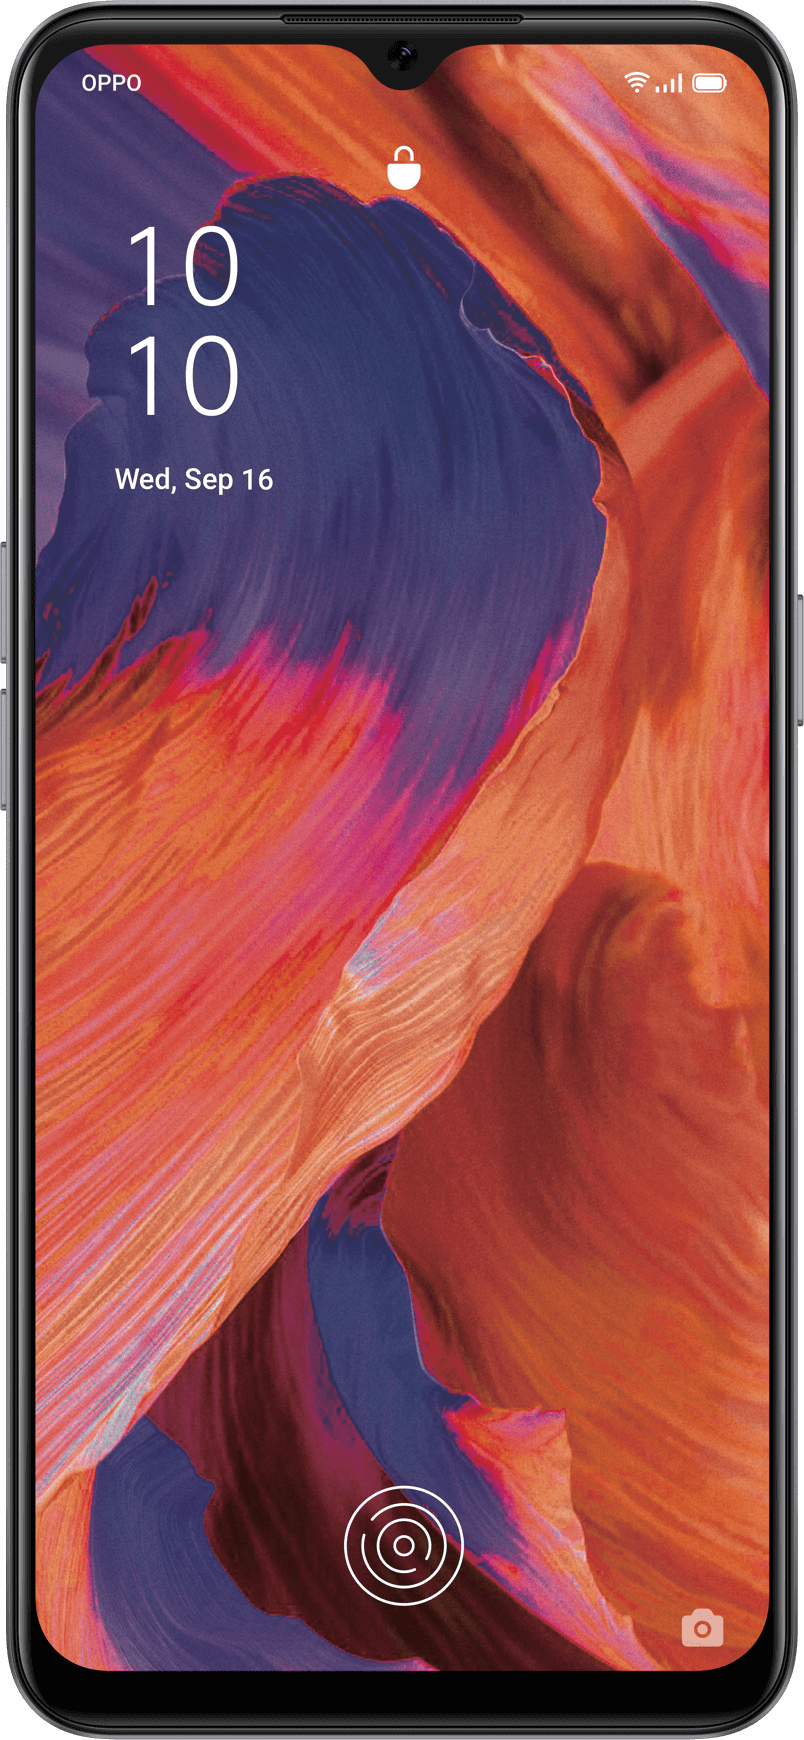 """OPPO A73 6.44""""screen, 2400 x 1080 resolution, 90.7% screen-to-body ratio, 408PPI pixel density, 1.67mm border width, 20 : 9 aspect ratio"""